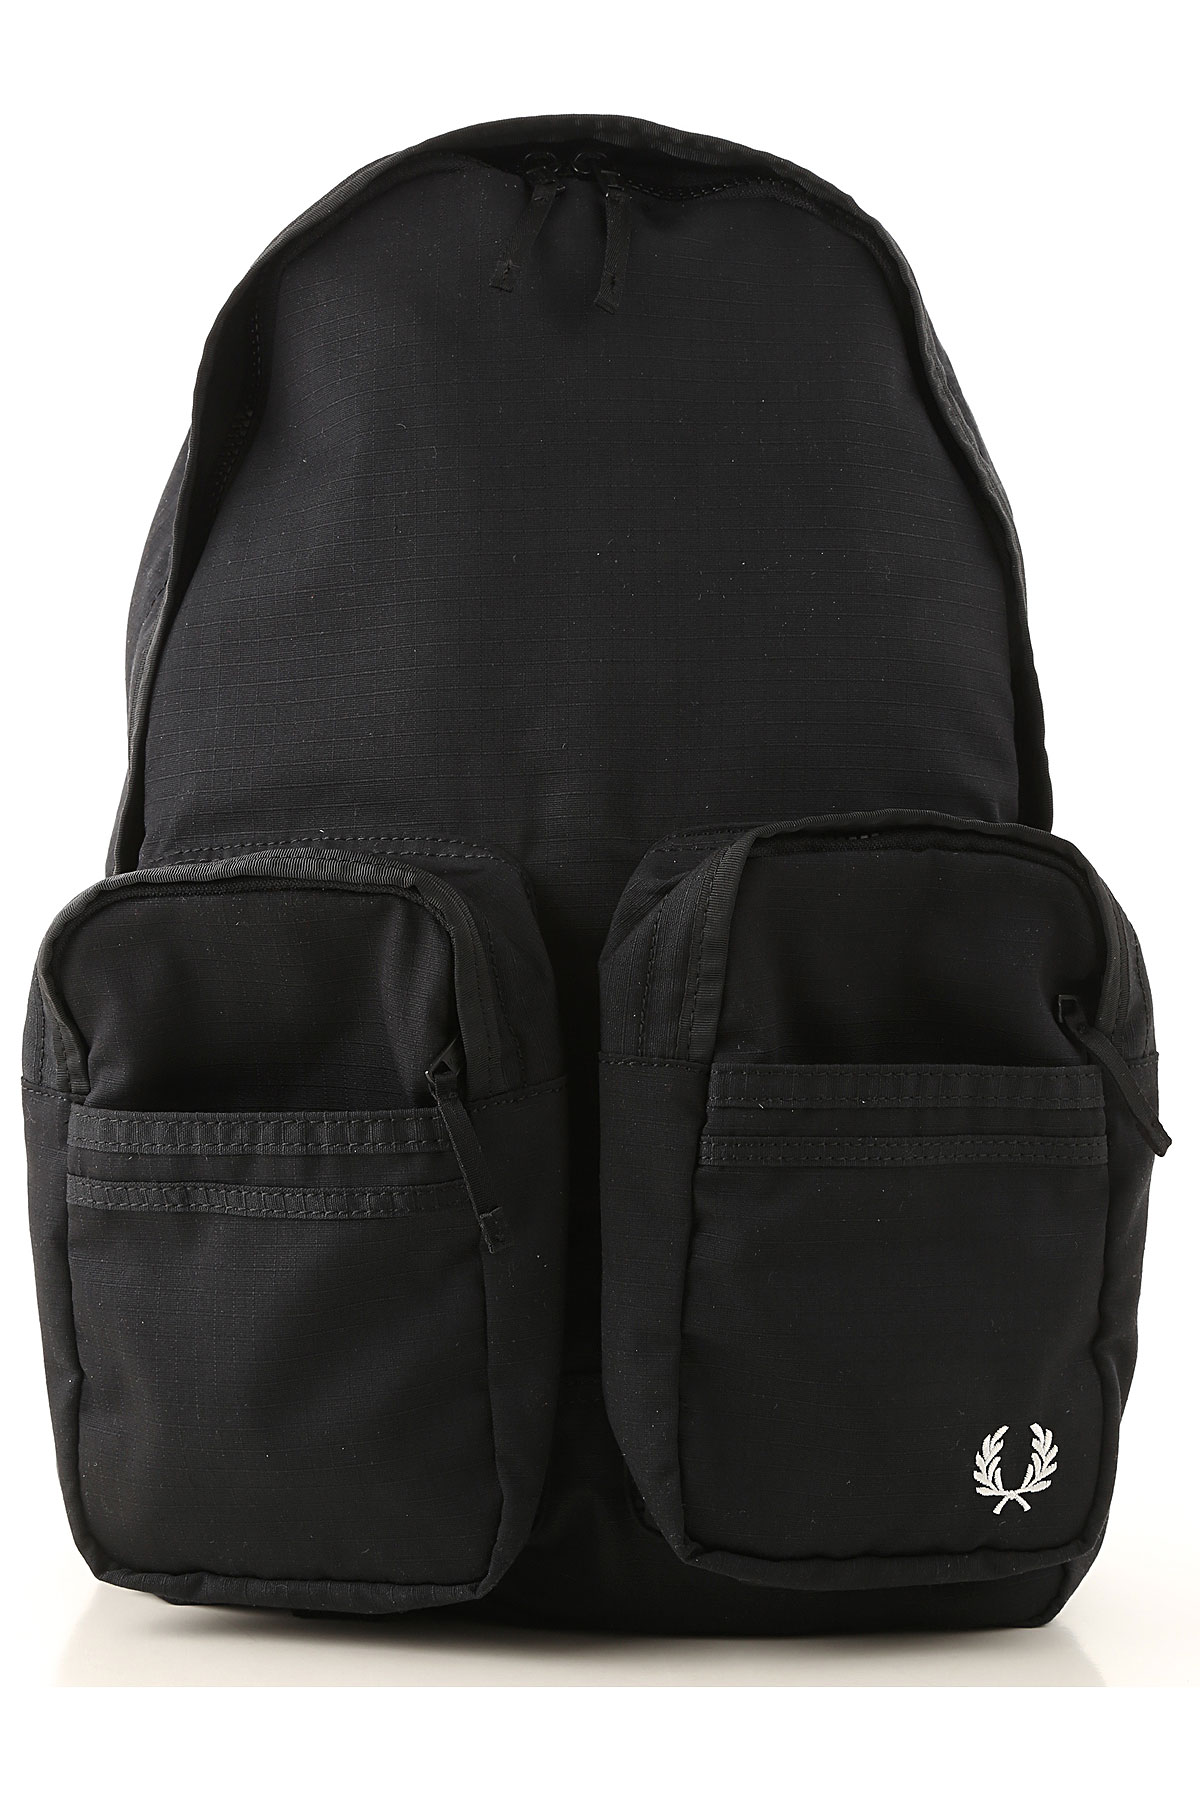 Fred Perry Backpack for Men On Sale, Black, Fabric, 2019